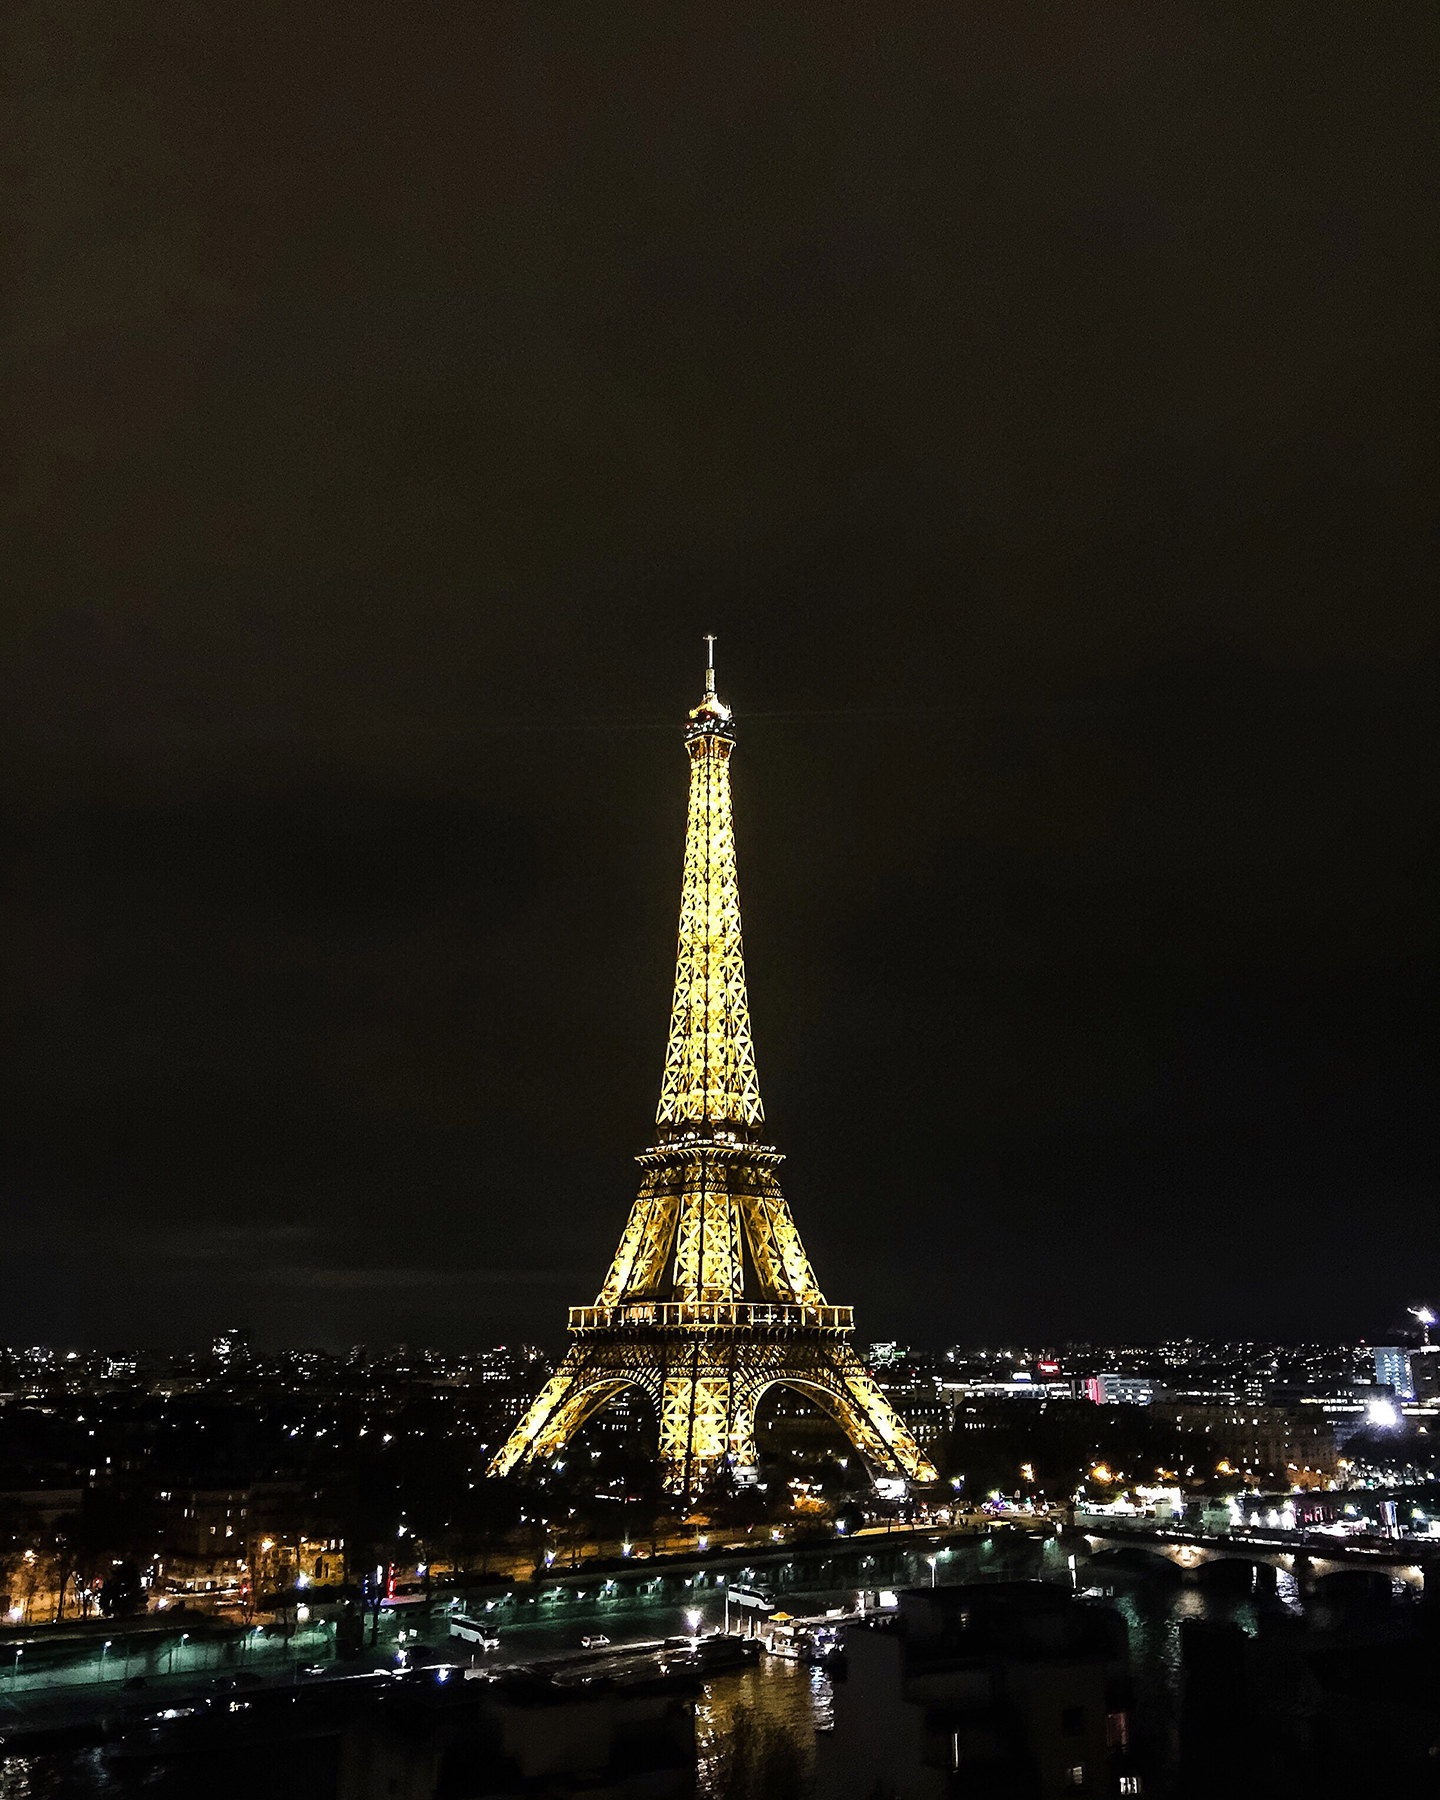 Blog-Mode-And-The-City-Lifestyle-Cinq-Petites-Choses-164-Paris-vue-Shangrila-Tour-Eiffel